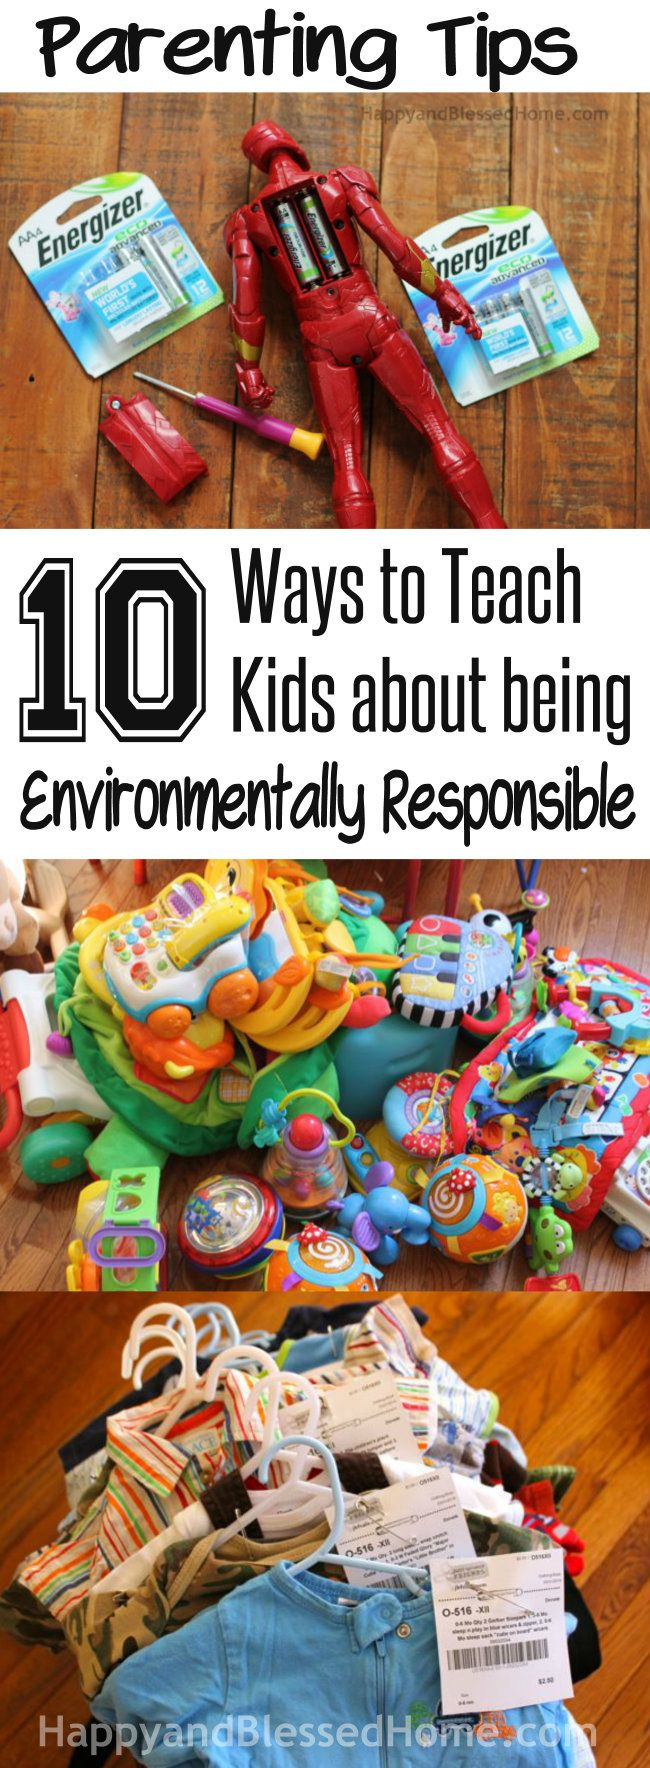 Parenting Tips with 10 Ways to Teach Kids about being Environmentally Responsible by reusing, recycling & conserving. Plus learn about Energizer Eco Advanced Recycled Batteries from HappyandBlessedHome.com #BringingInnovation #CollectiveBias #ad #parentingtips #teachingkids #conserve #reuse #recycle